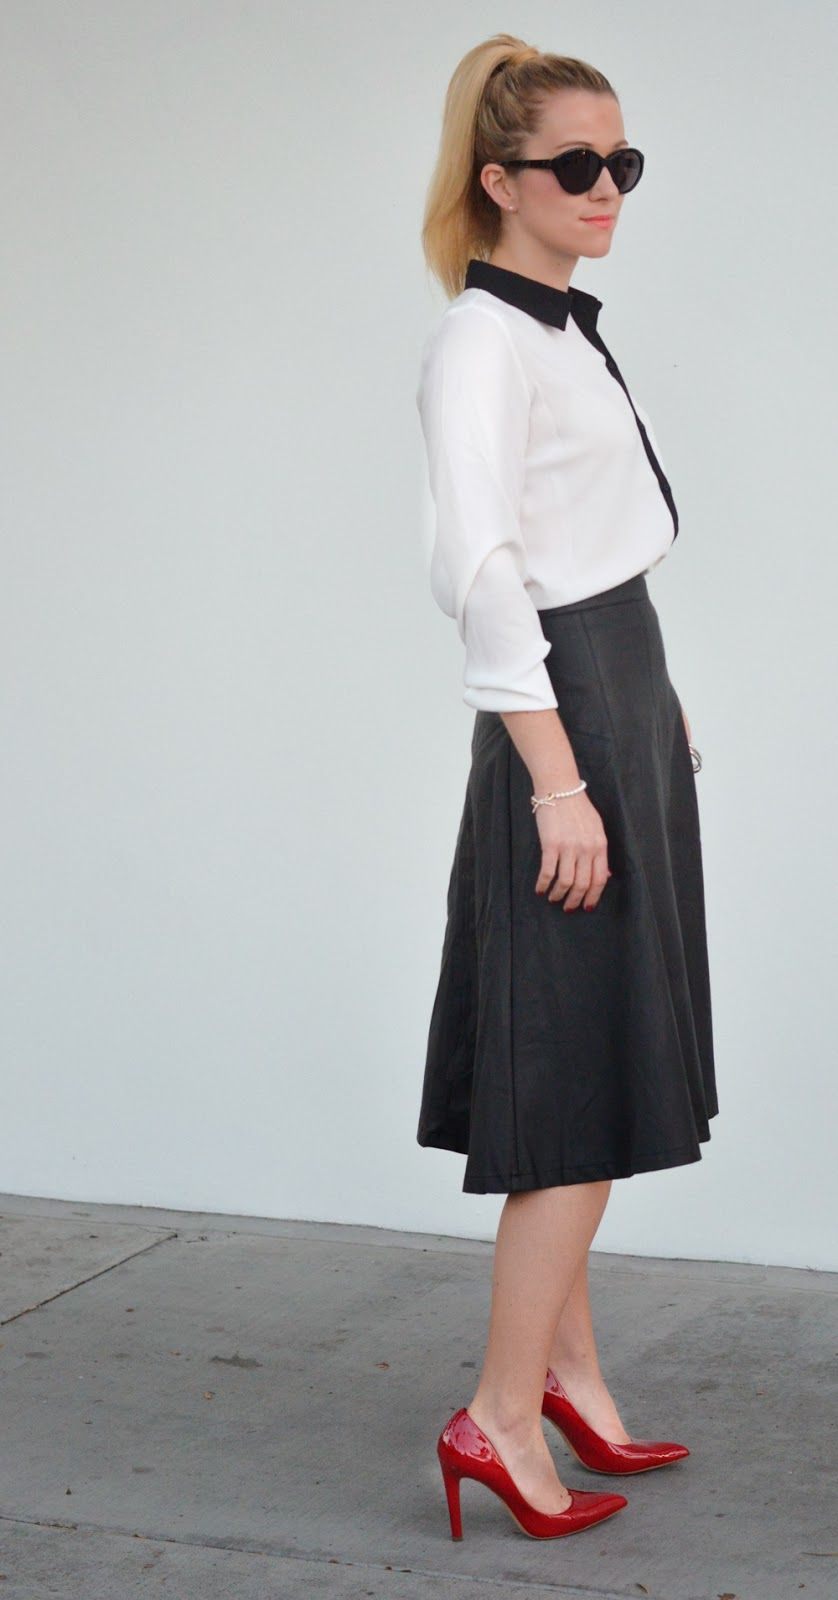 Faux Leather Midi Skirt + Heels | Luci's Morsels